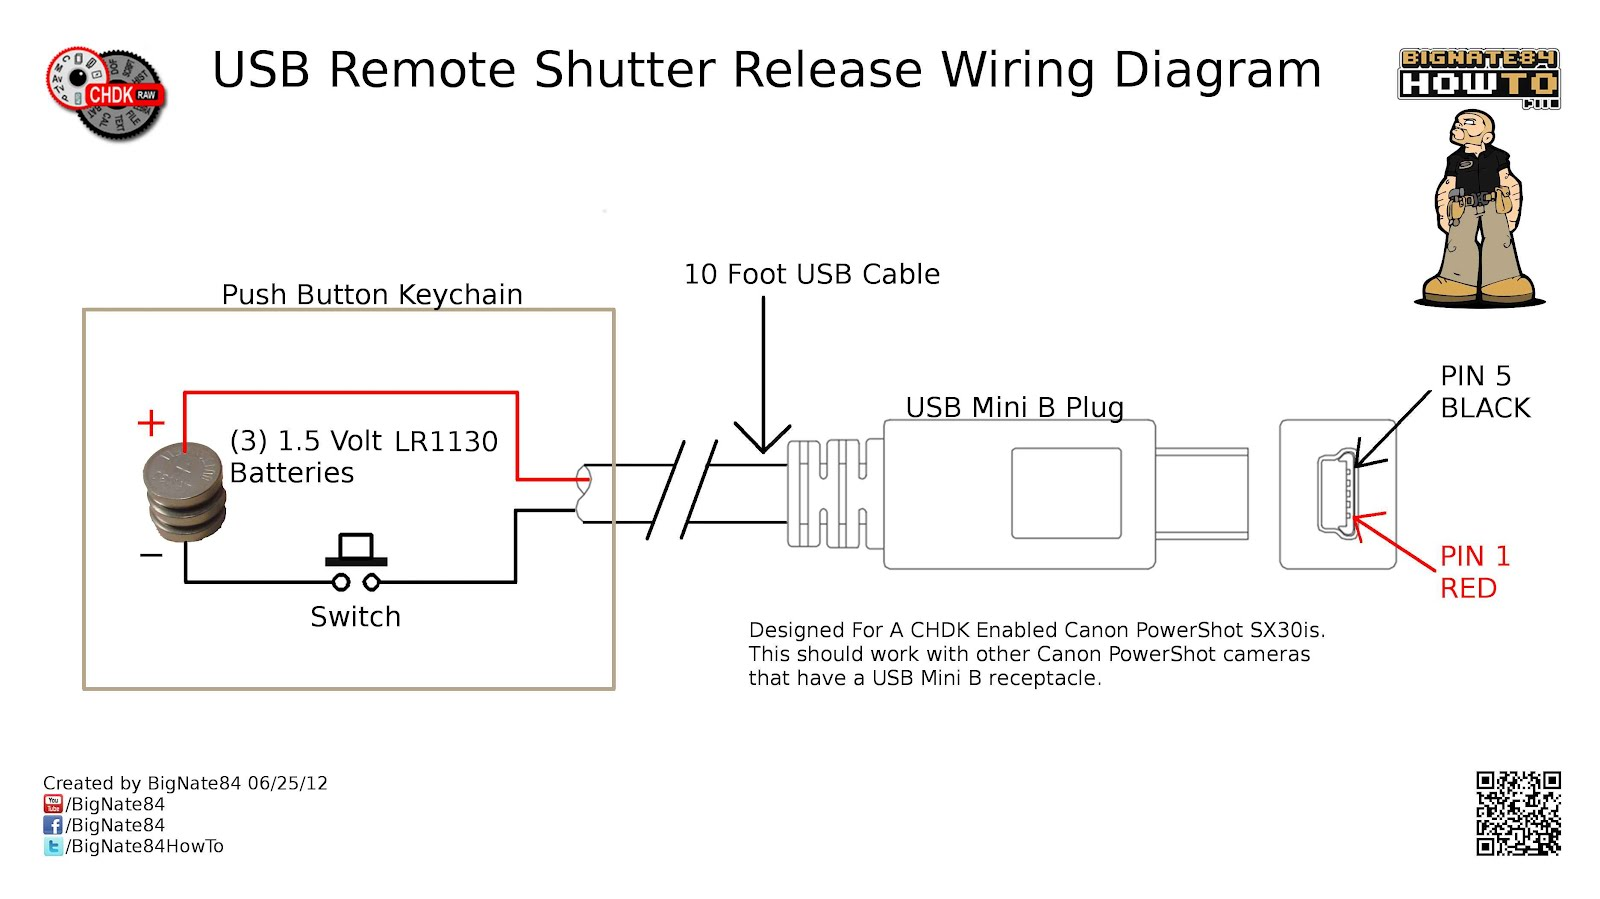 latest?cb=20120809225626 image 0001 usb remote shutter wiring diagram 1 jpeg chdk wiki usb cable wiring schematic at gsmportal.co